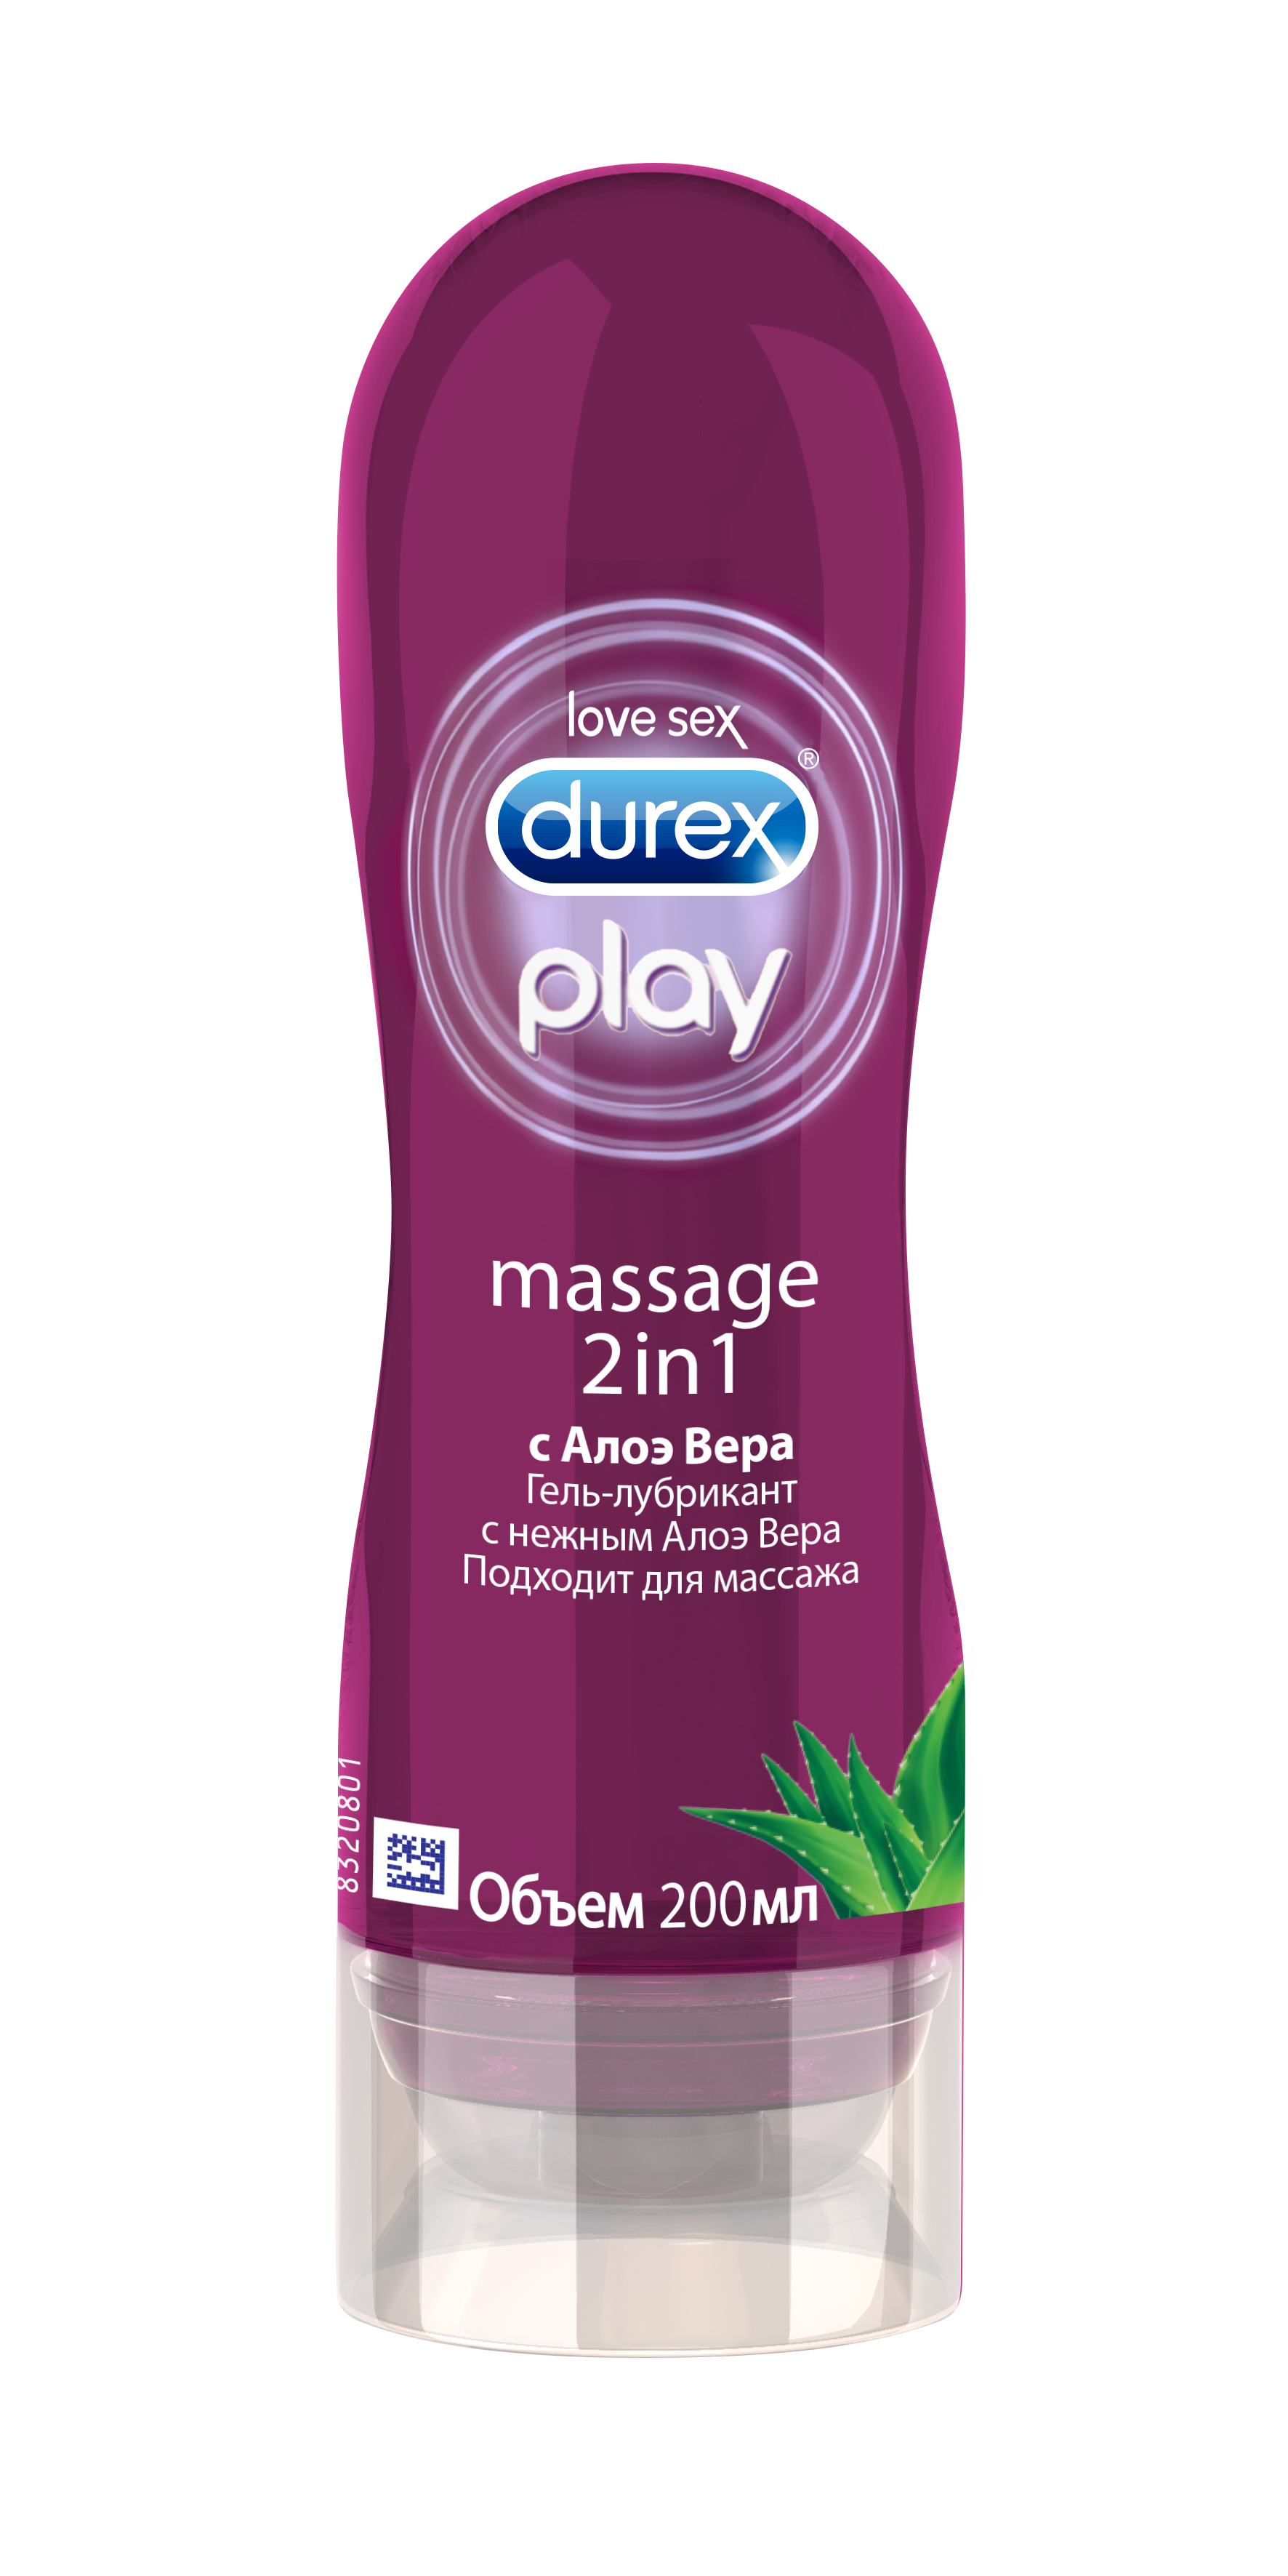 картинка DUREX Гель-лубрикант Play Massage 2 in 1 с Aлоэ Вера 200 мл